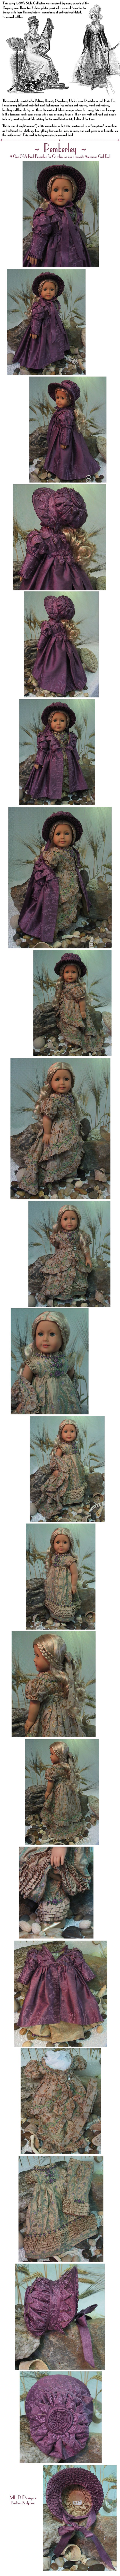 "MHD Designs ""Pemberly"" for Caroline or other American Girl Dolls"